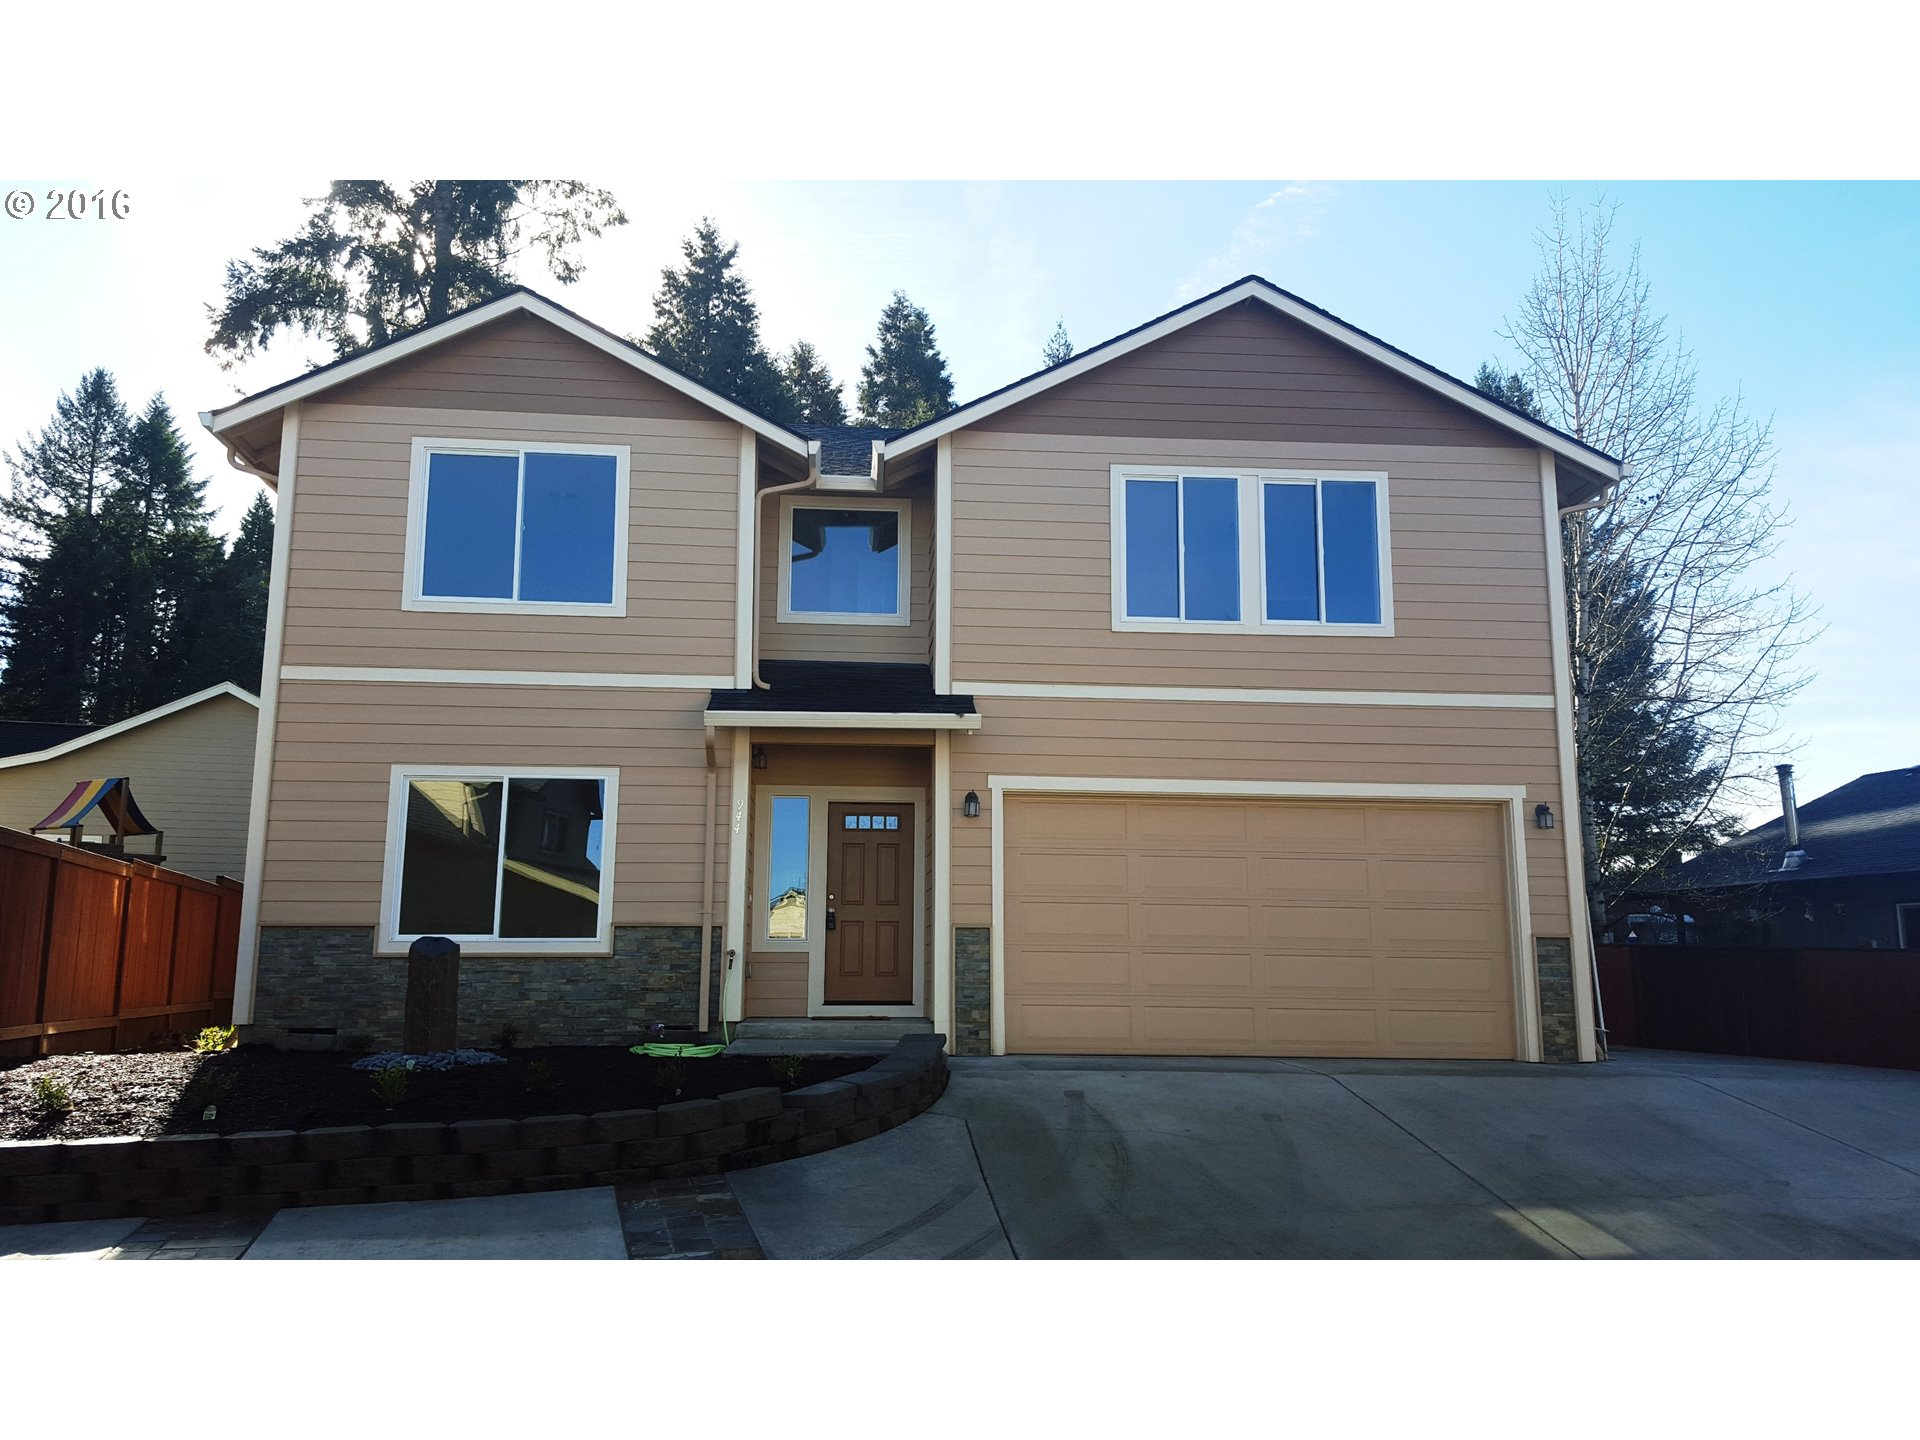 944 S 56th St, Springfield, OR